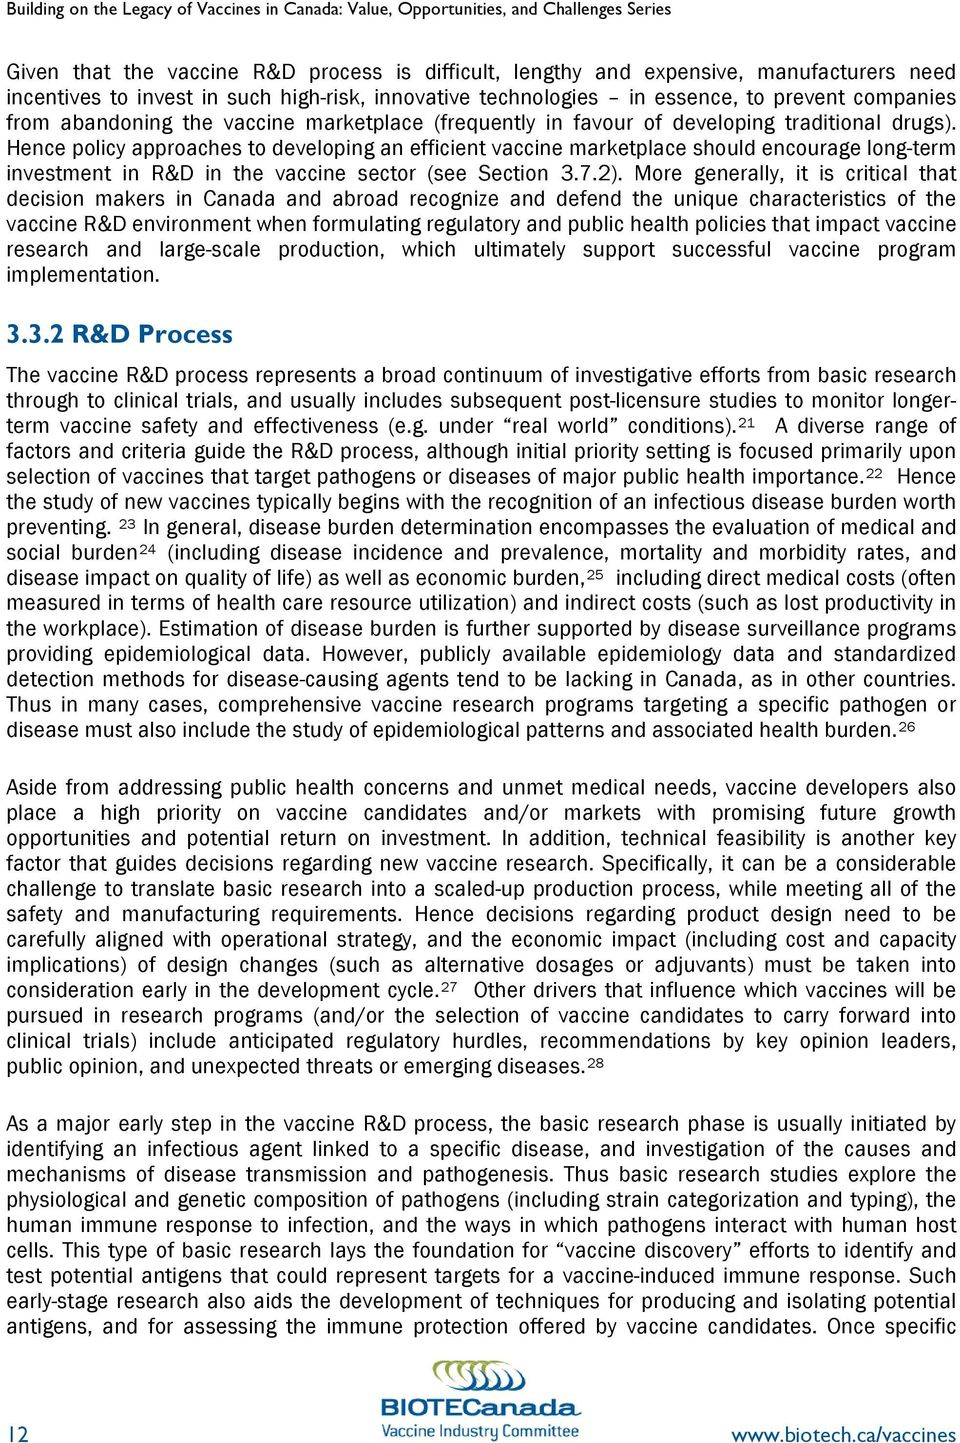 Hence policy approaches to developing an efficient vaccine marketplace should encourage long-term investment in R&D in the vaccine sector (see Section 3.7.2).